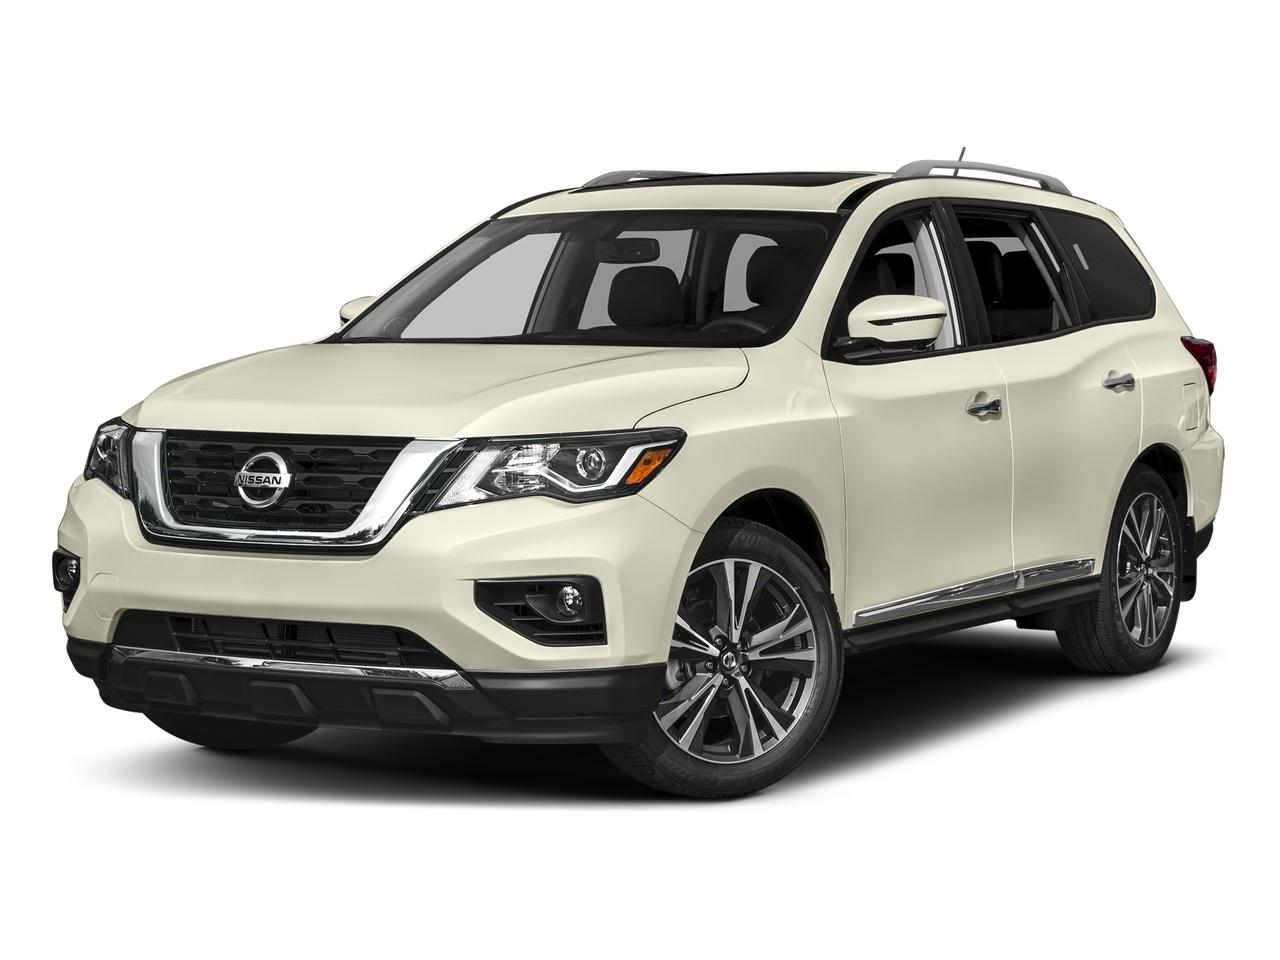 2017 Nissan Pathfinder Vehicle Photo in Jenkintown, PA 19046